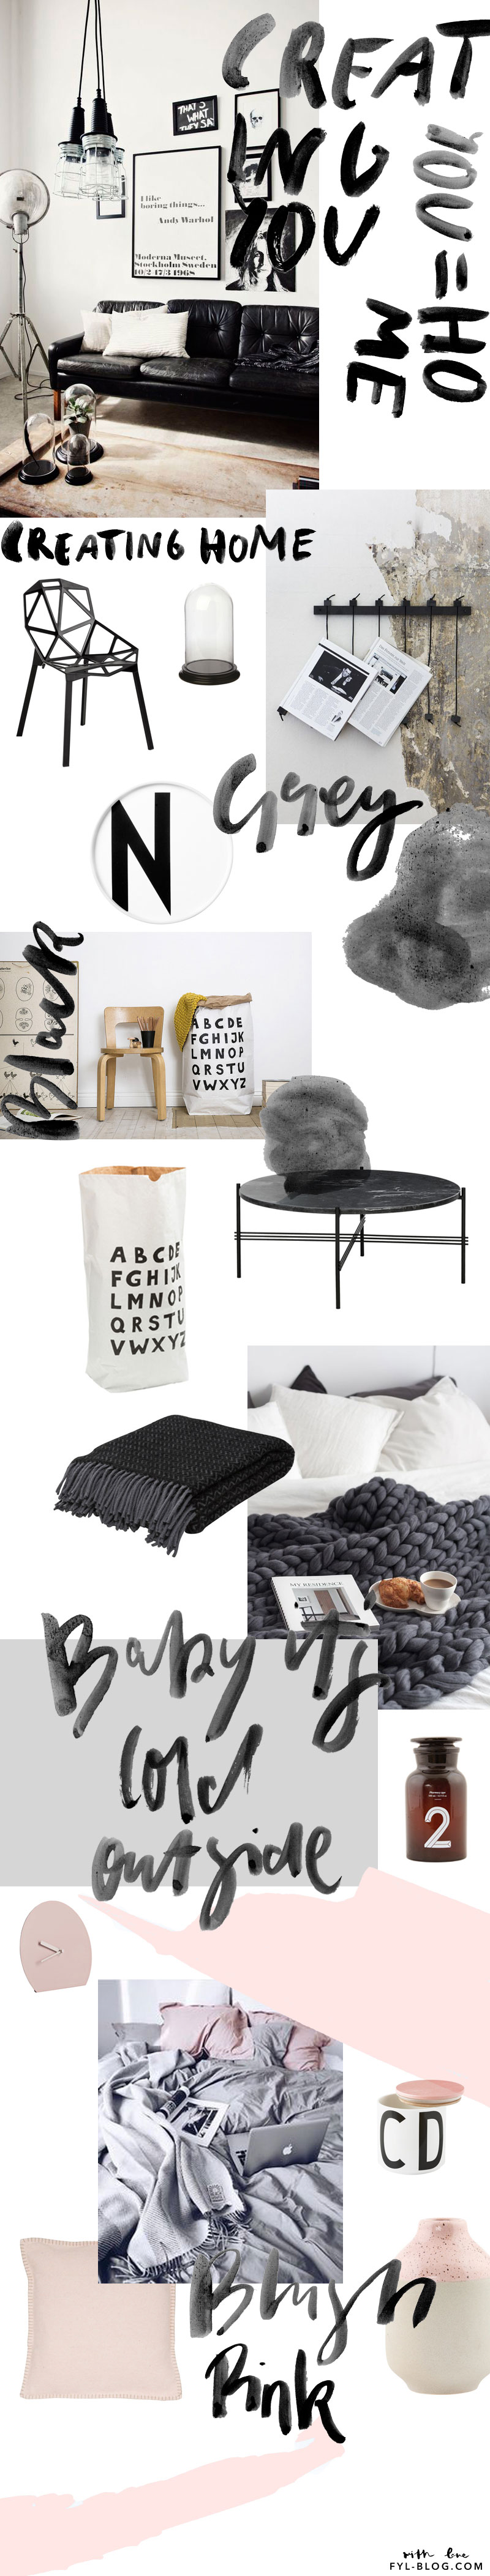 Creating-Home-Collage.jpg